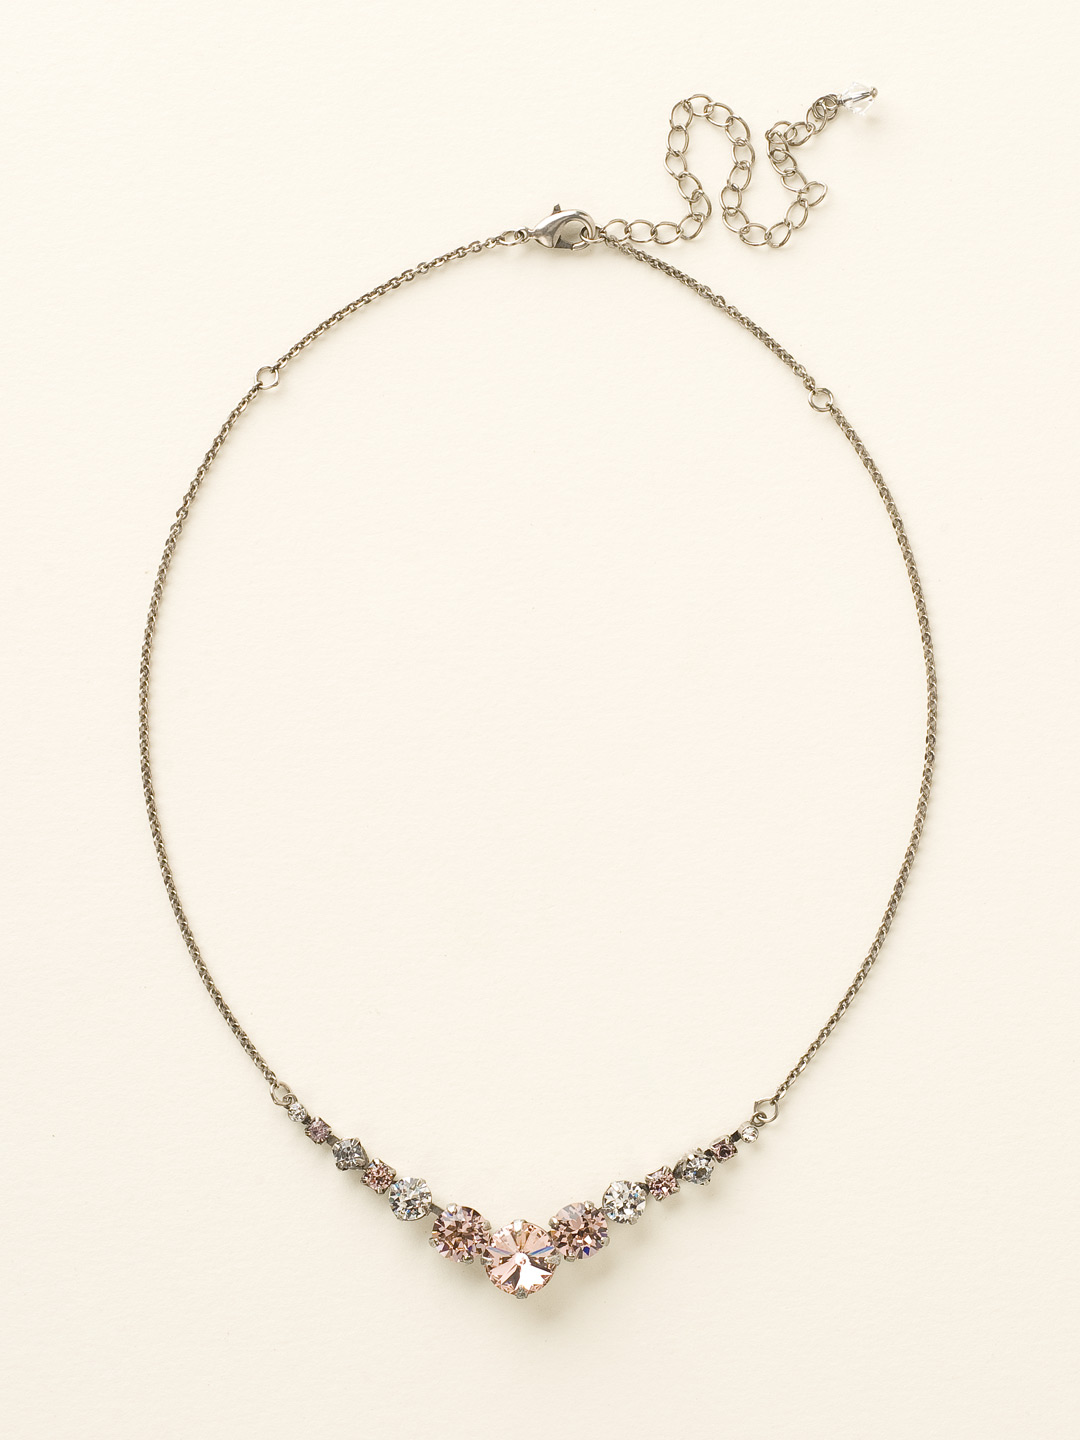 Delicate Round Crystal Necklace in Crystal Rose